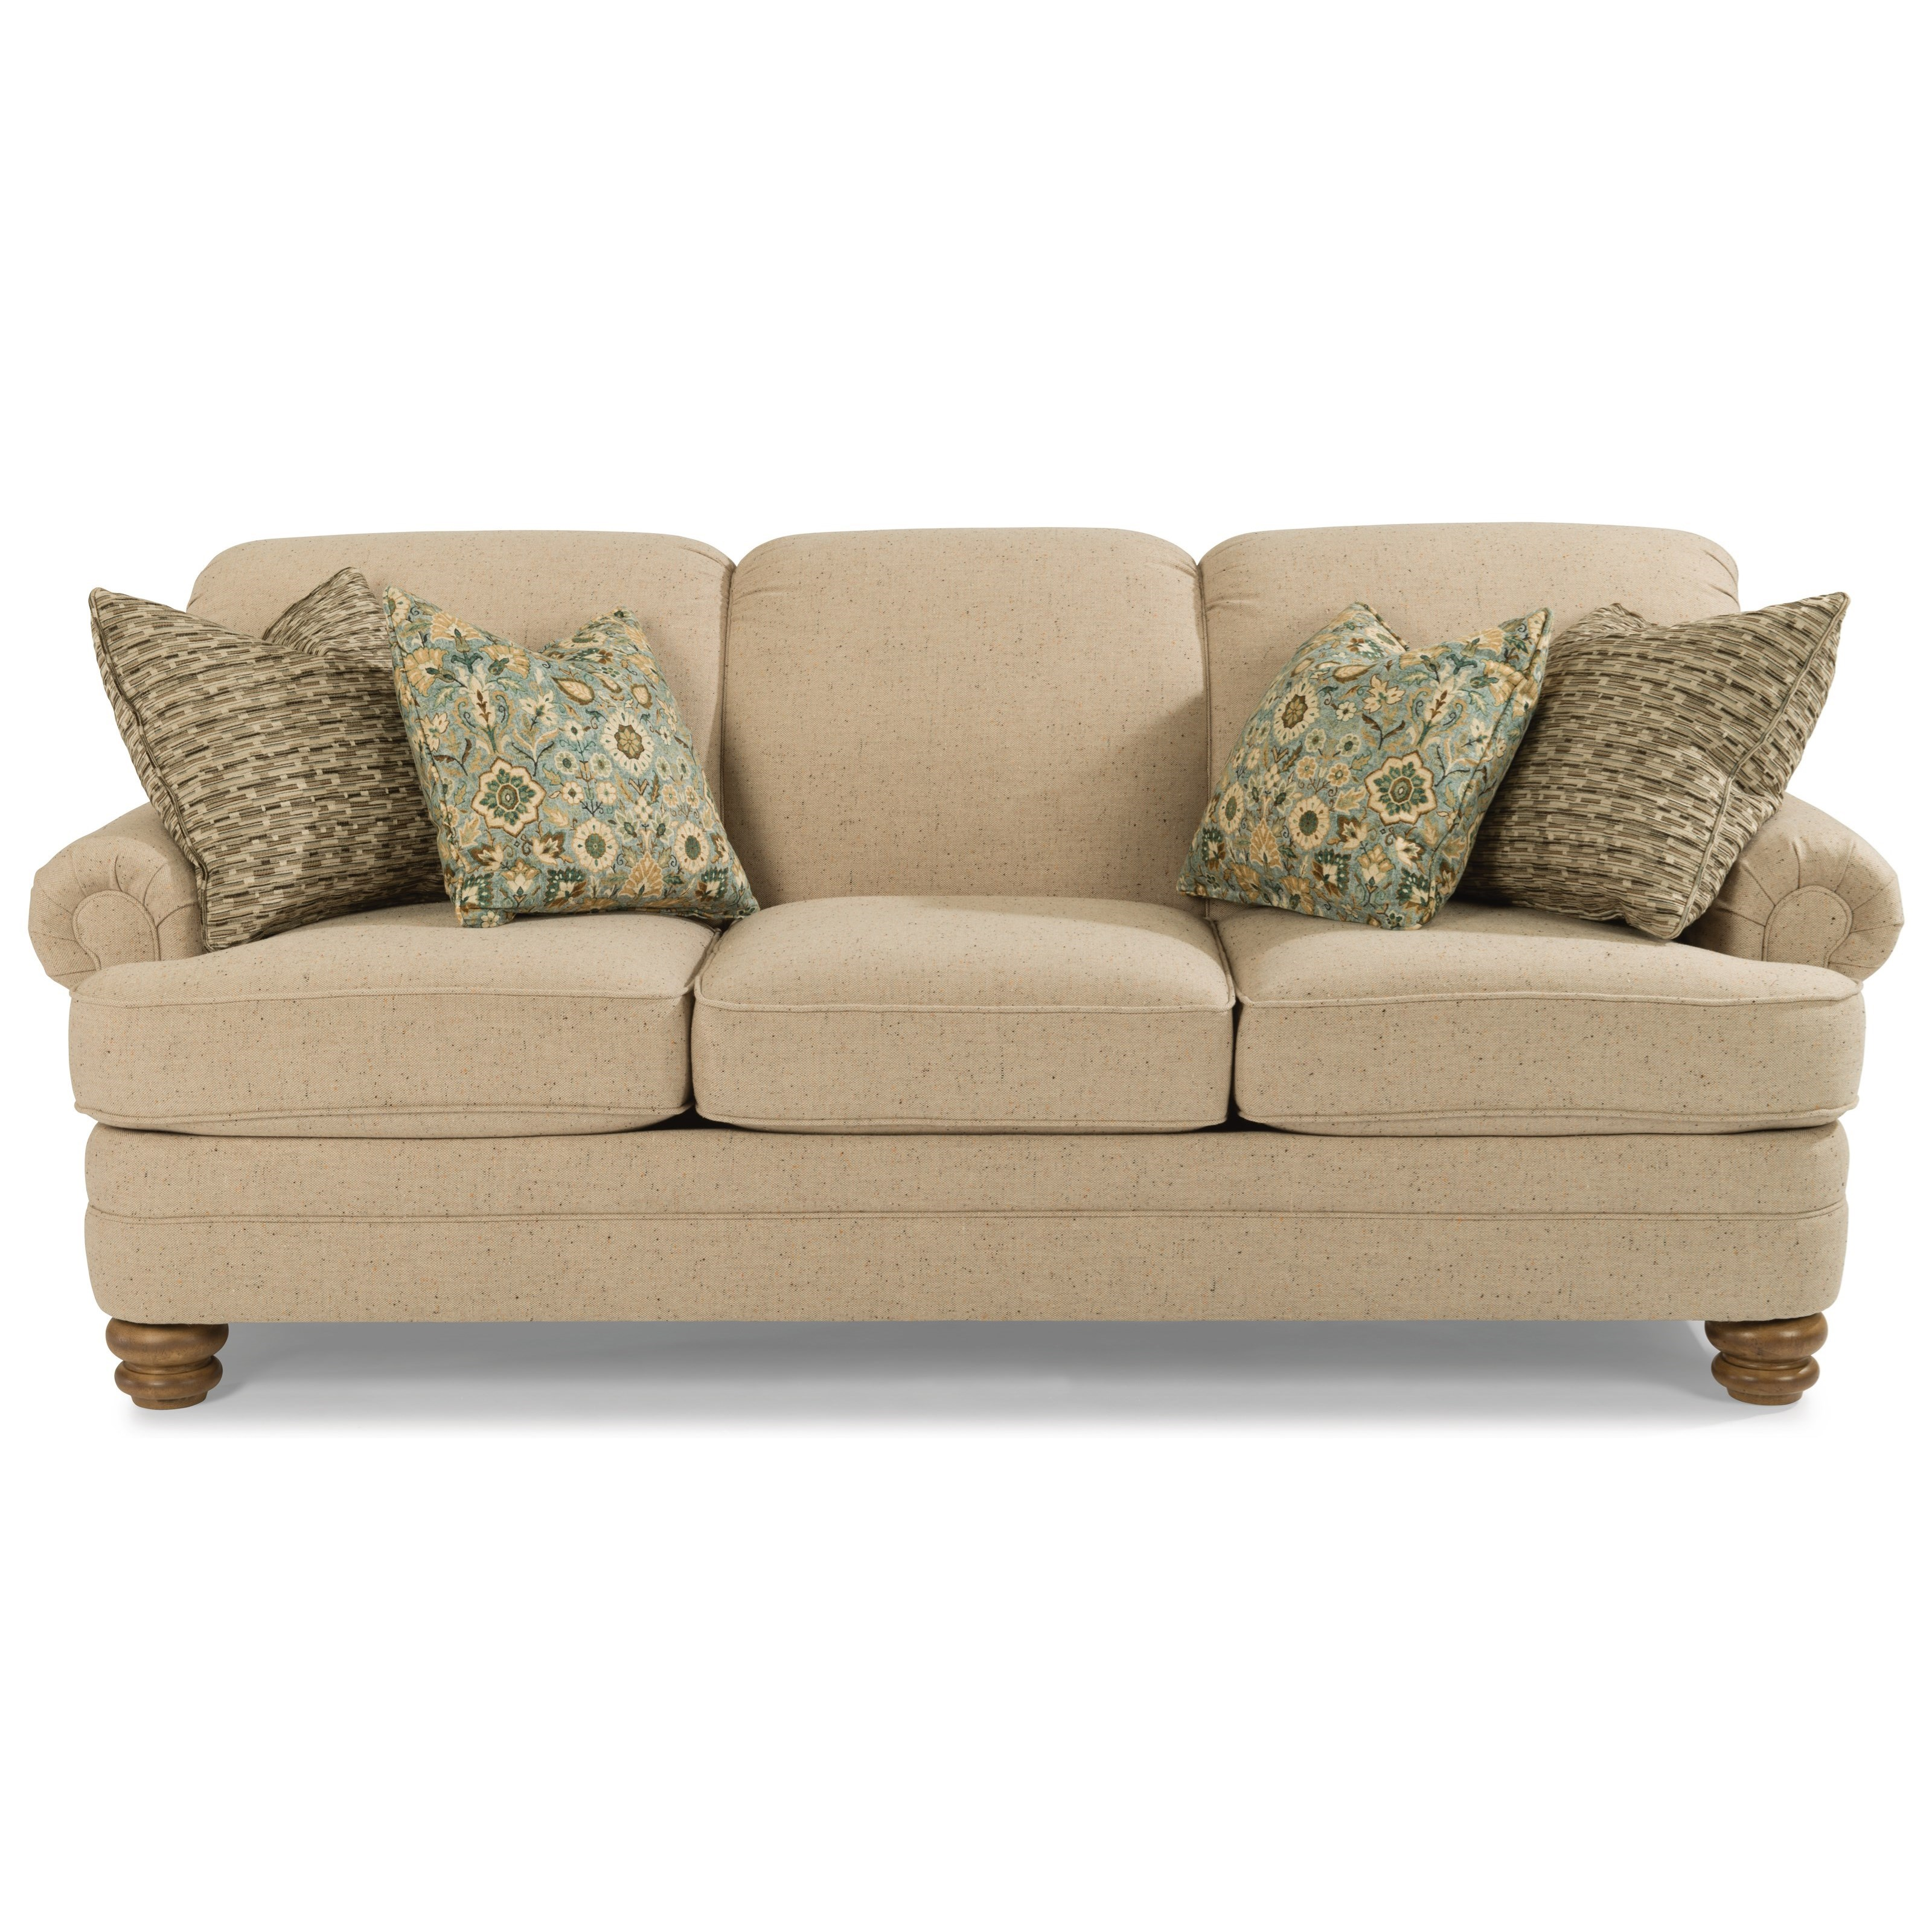 Bay Bridge Traditional Sofa by Flexsteel at Jordan's Home Furnishings